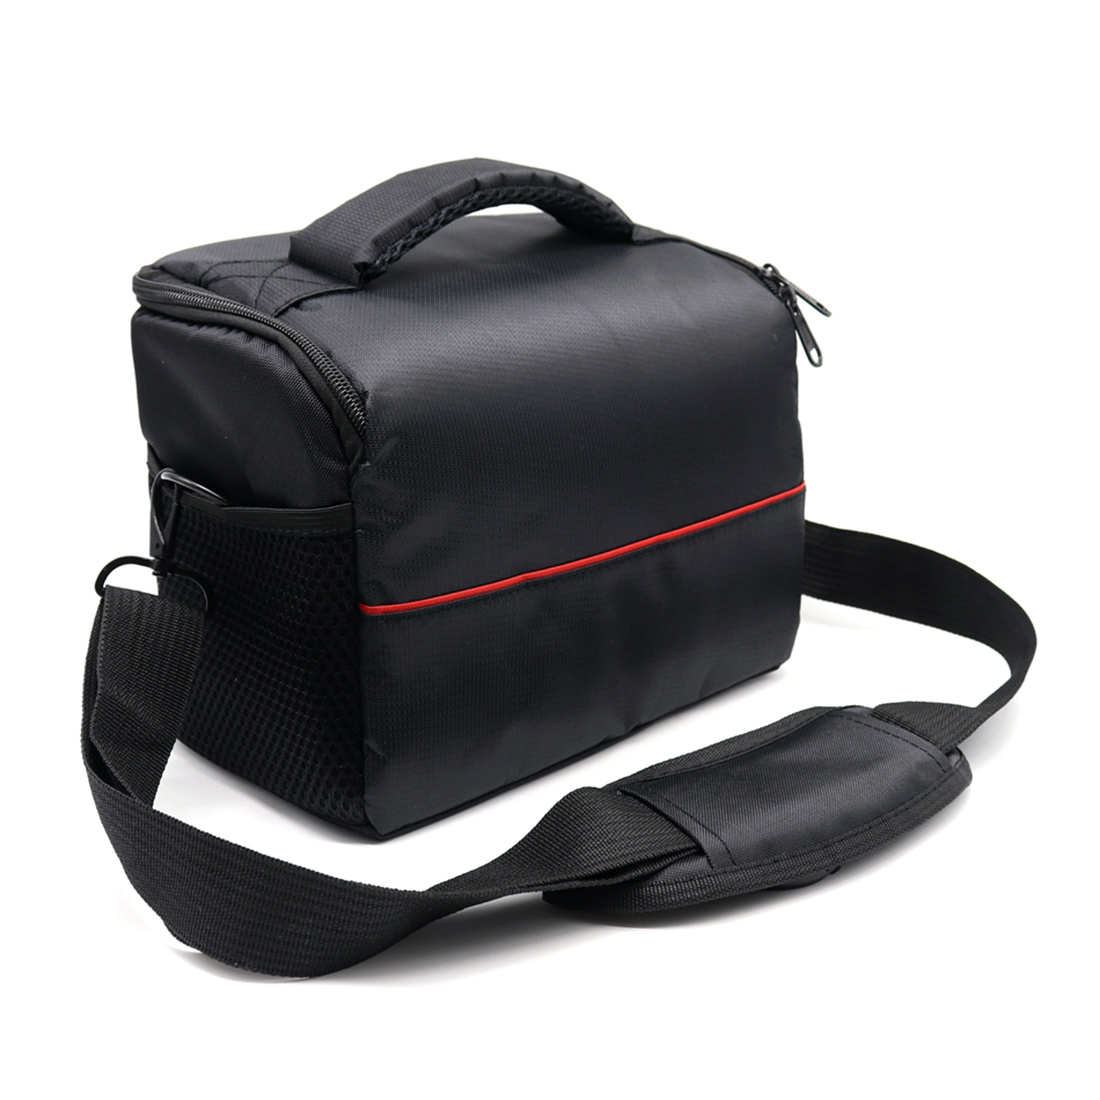 Waterproof Camera Case Bag for Canon EOS 1300D 1100D 1200D 550D 700D 600D 650D 750D 5D Mark II IV T6i T5i Shoulder Bag JUN14 huwang photo backpack dslr camera bag for canon 1300d 750d 60d 1200d 1100d 7d 6d 5d mark iv iii ii 200d 600d t6 canon camera bag